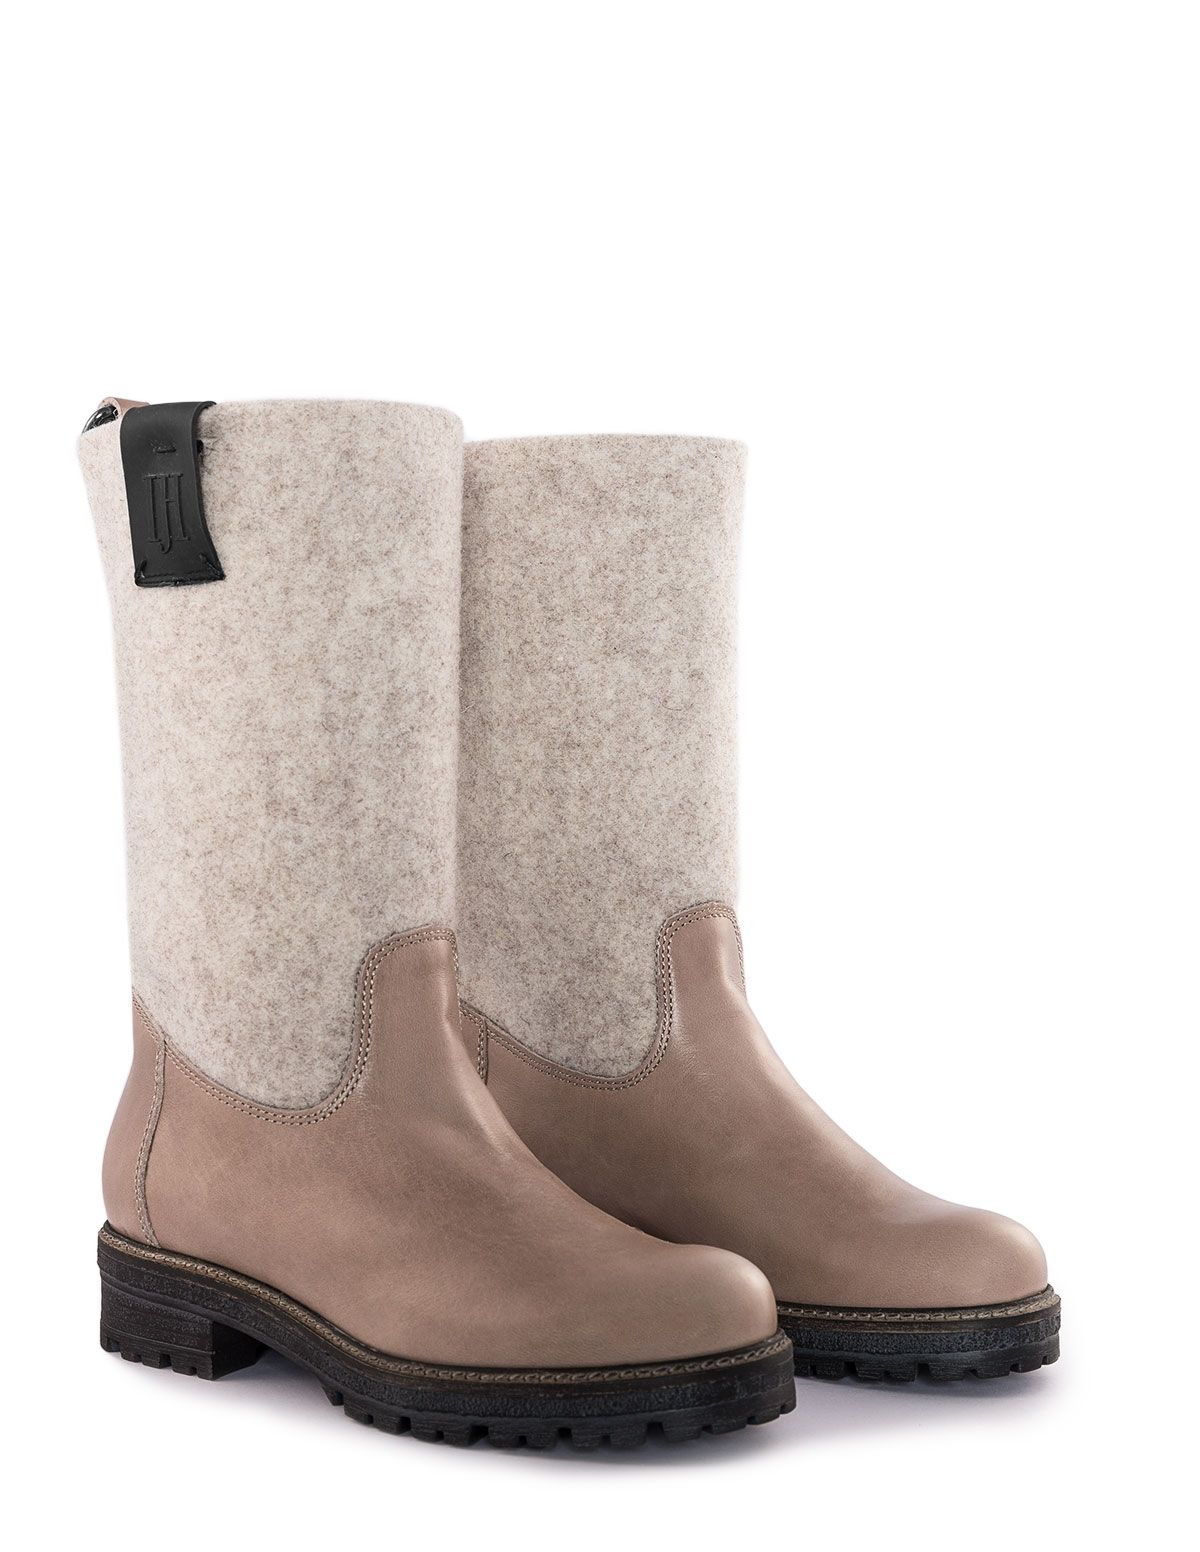 Ilse Jacobsen Leather and felt boots in Beige | Felt boots